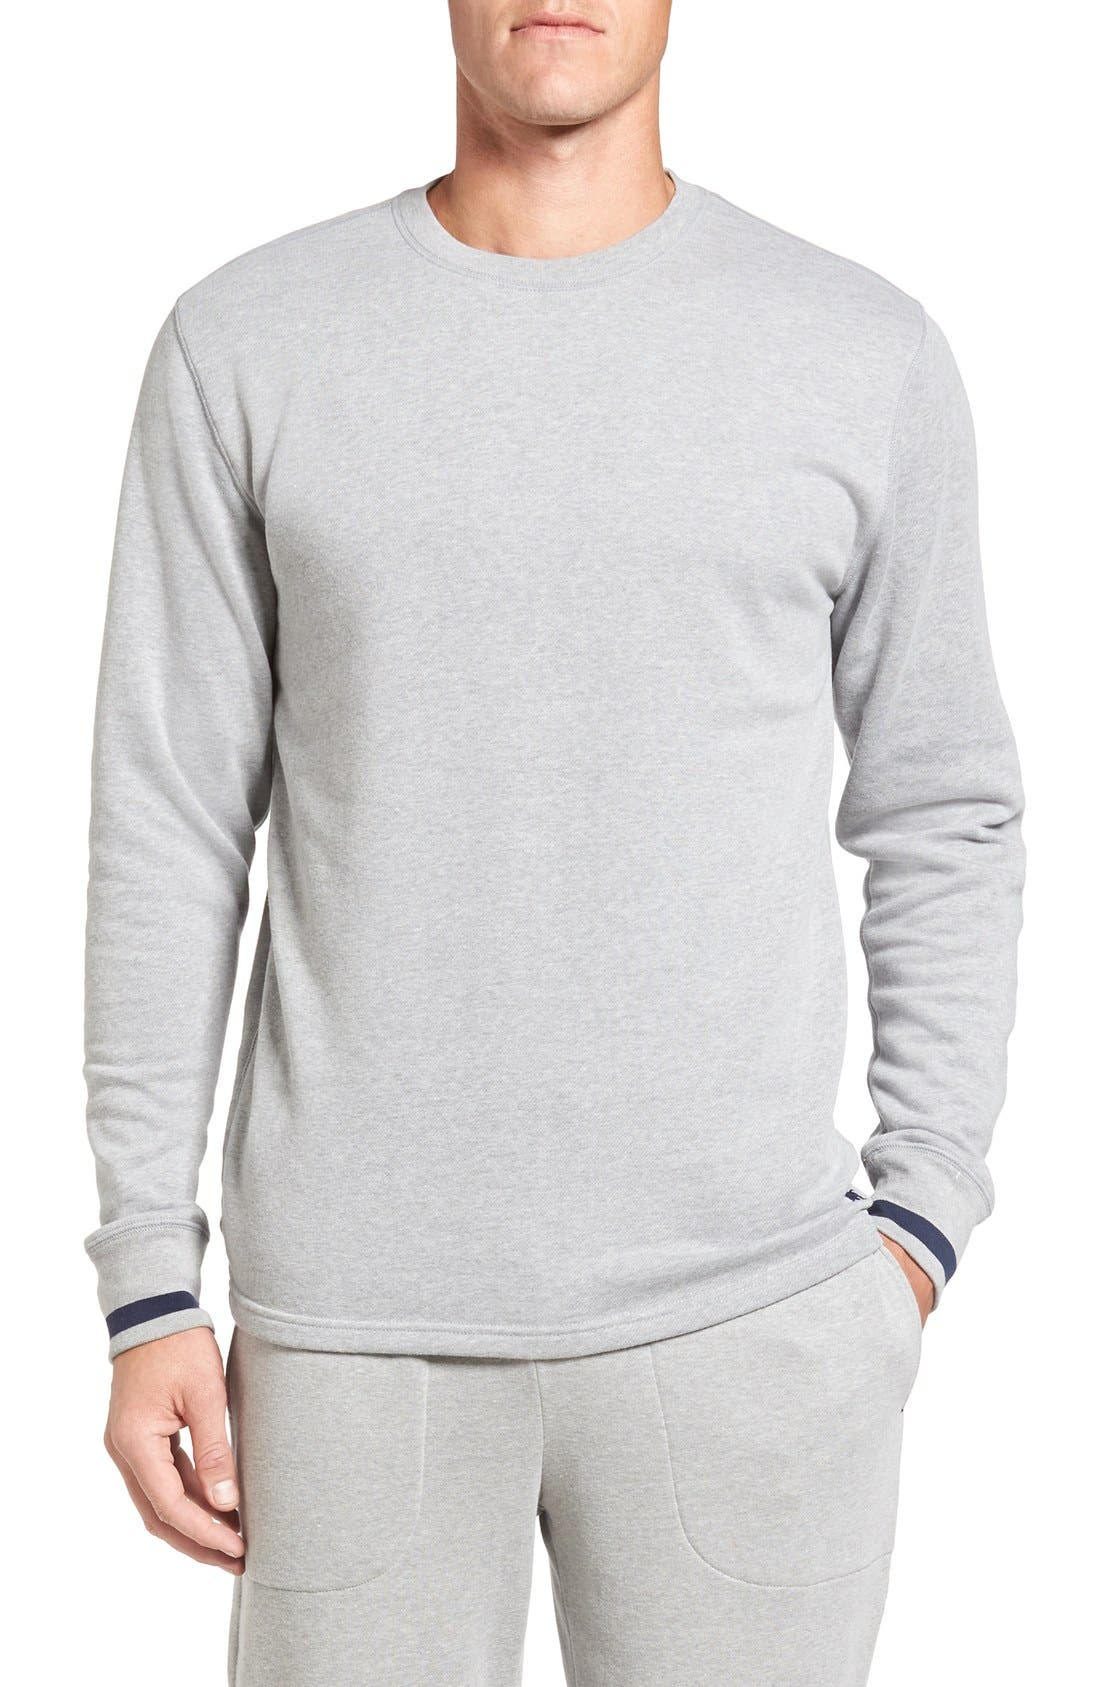 Brushed Jersey Cotton Blend Crewneck Sweatshirt,                         Main,                         color, Andover Heather Grey